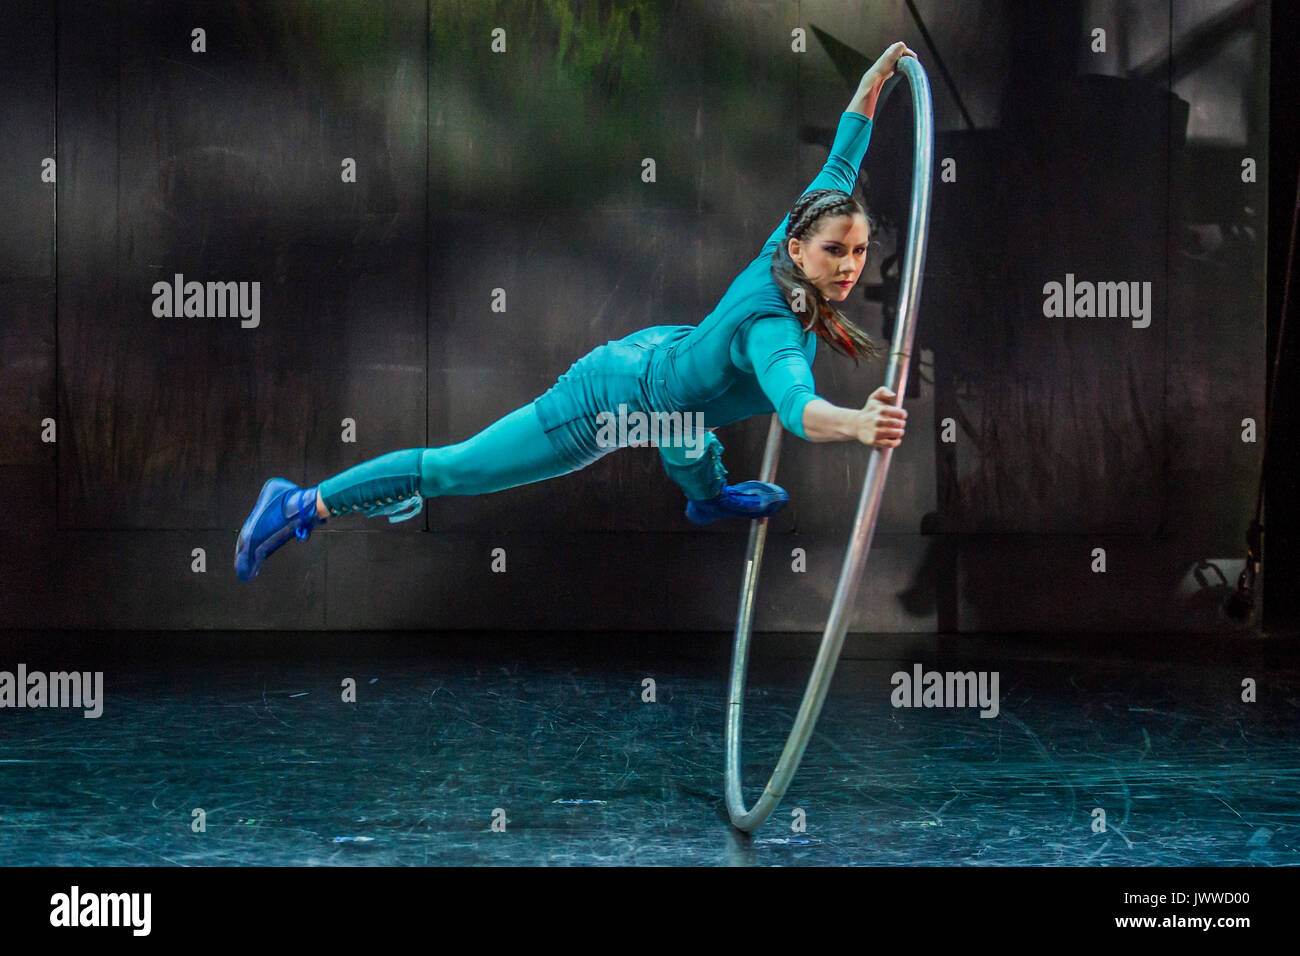 London, UK. 14th August, 2017. A Cyr wheel display by Sarah Lett - Cirkus Cirkör perform the UK premiere of - Stock Image